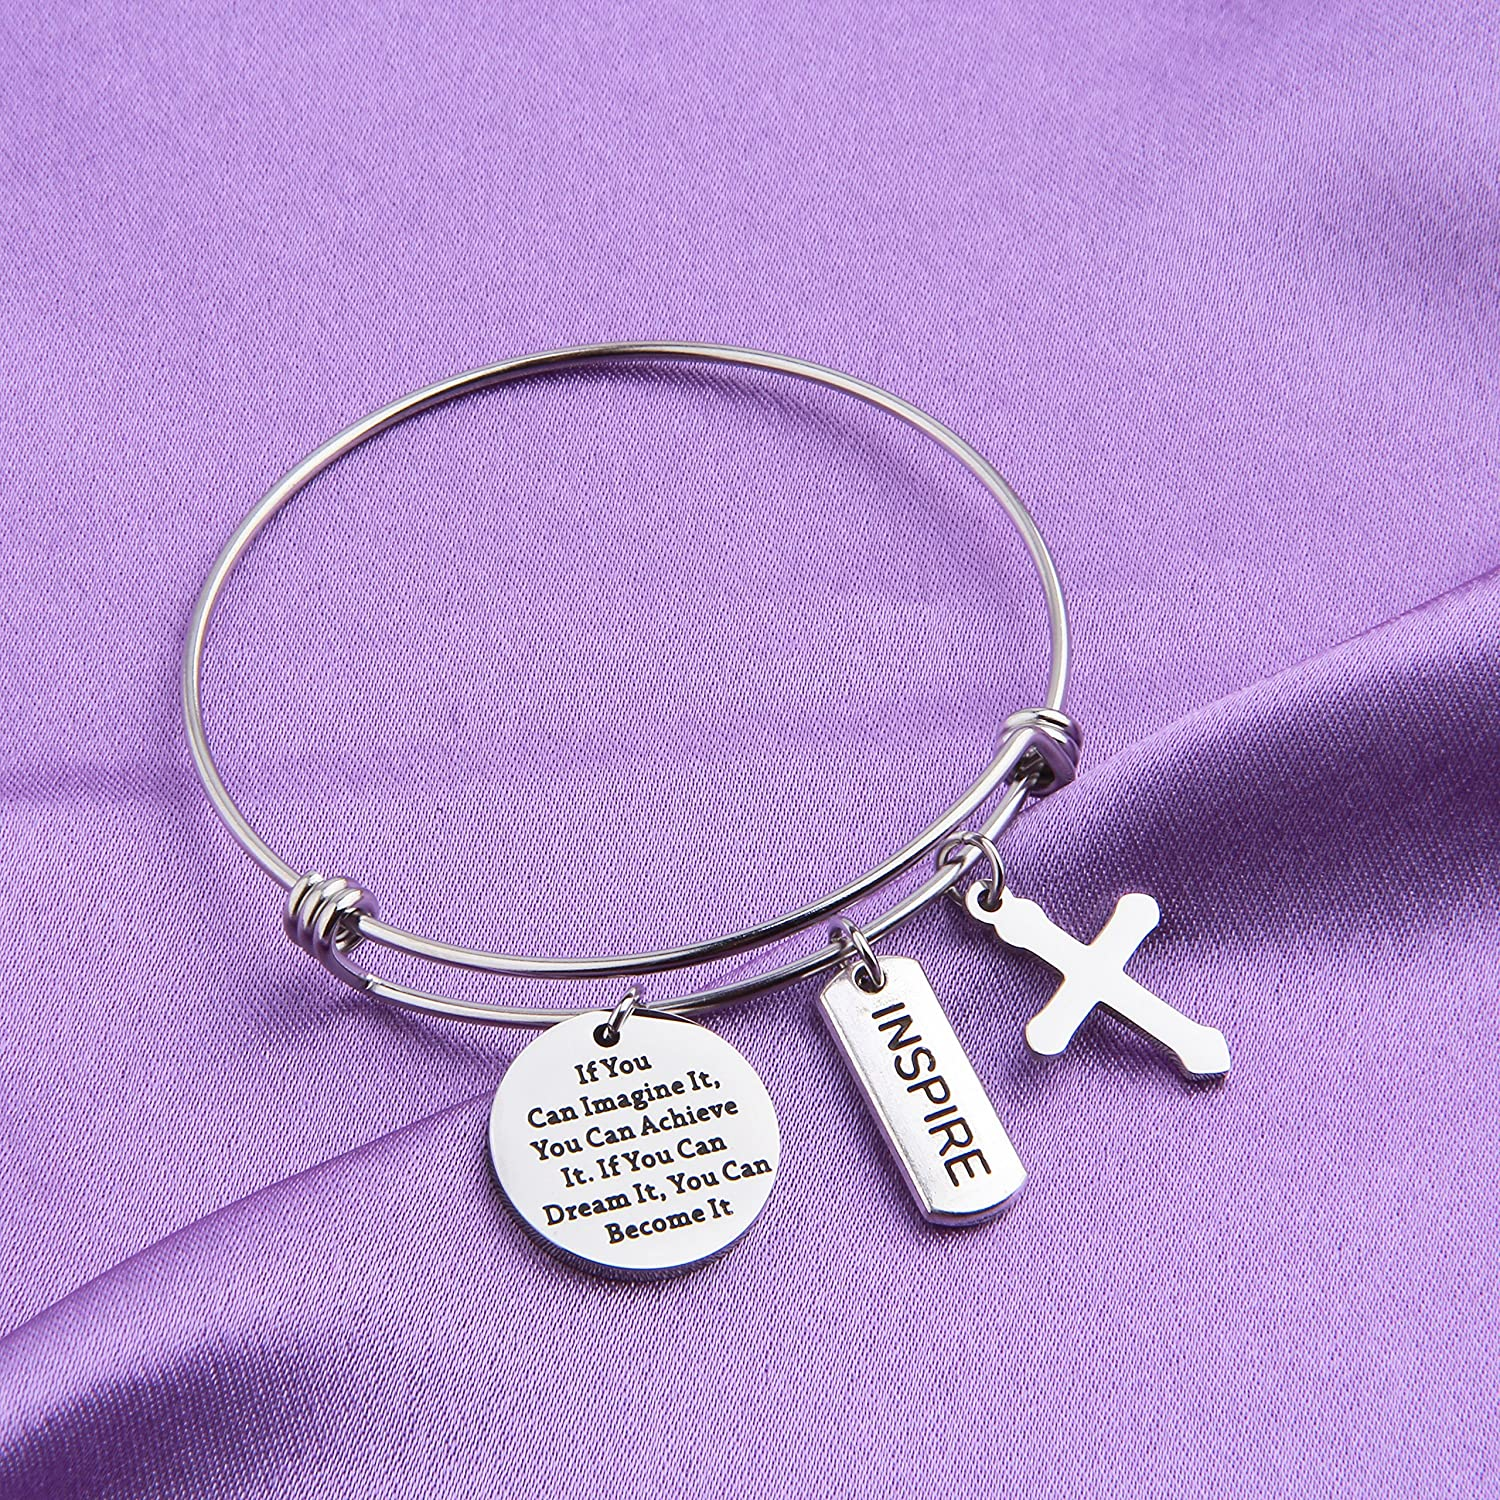 MAOFAED Graduation Gift If You can Imagine it You can Achieve it Inspirational Graduation Jewelry Gift for Her